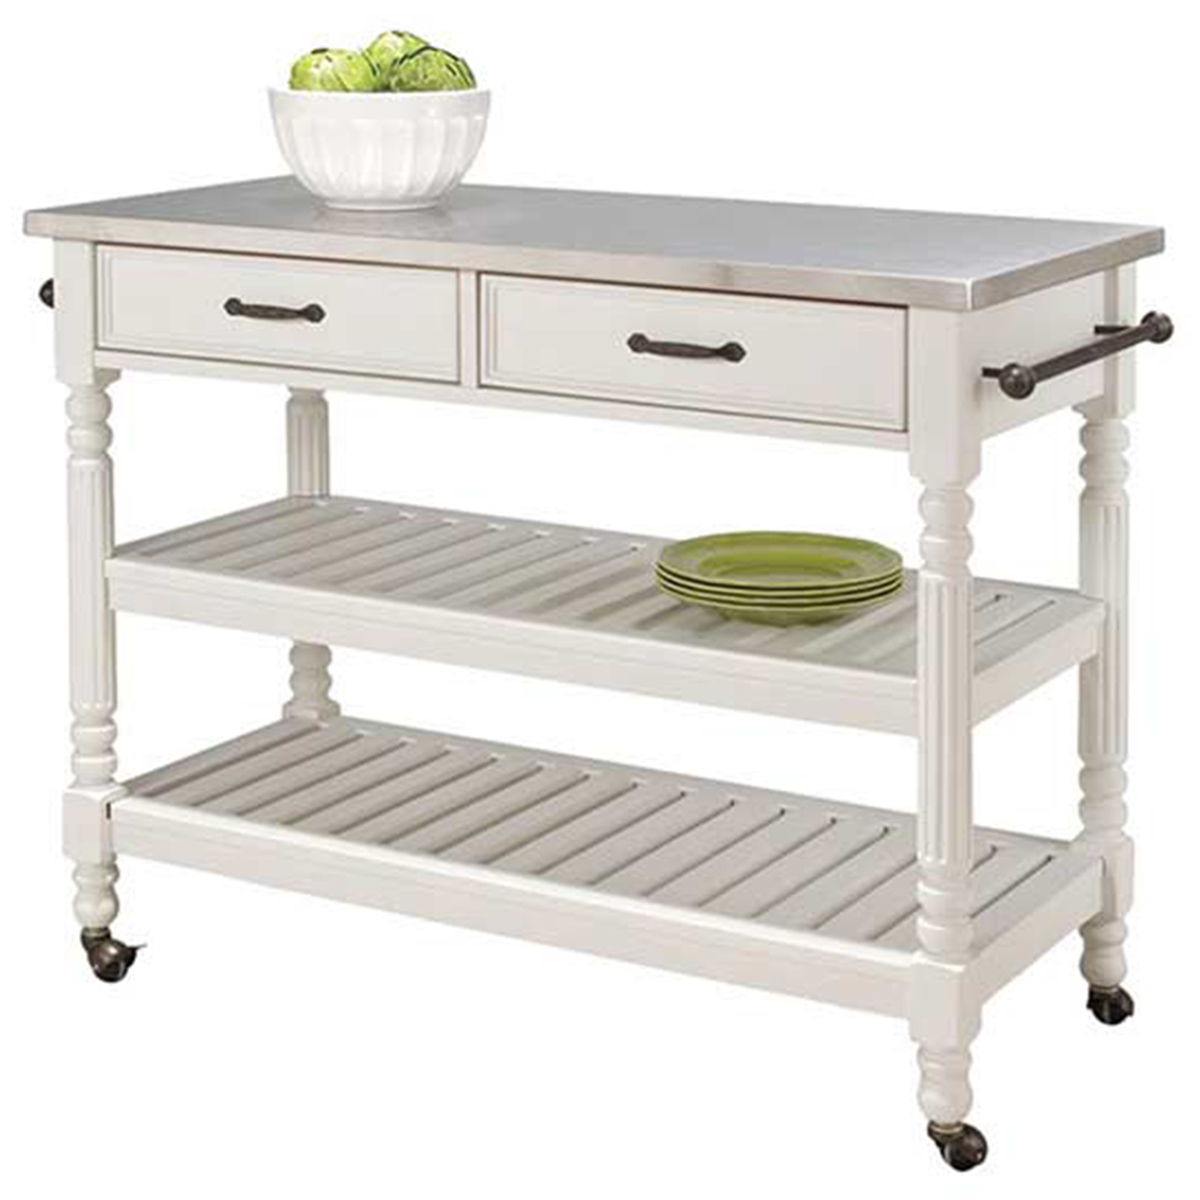 Rolling kitchen cart in white with two shelves and two drawers photo